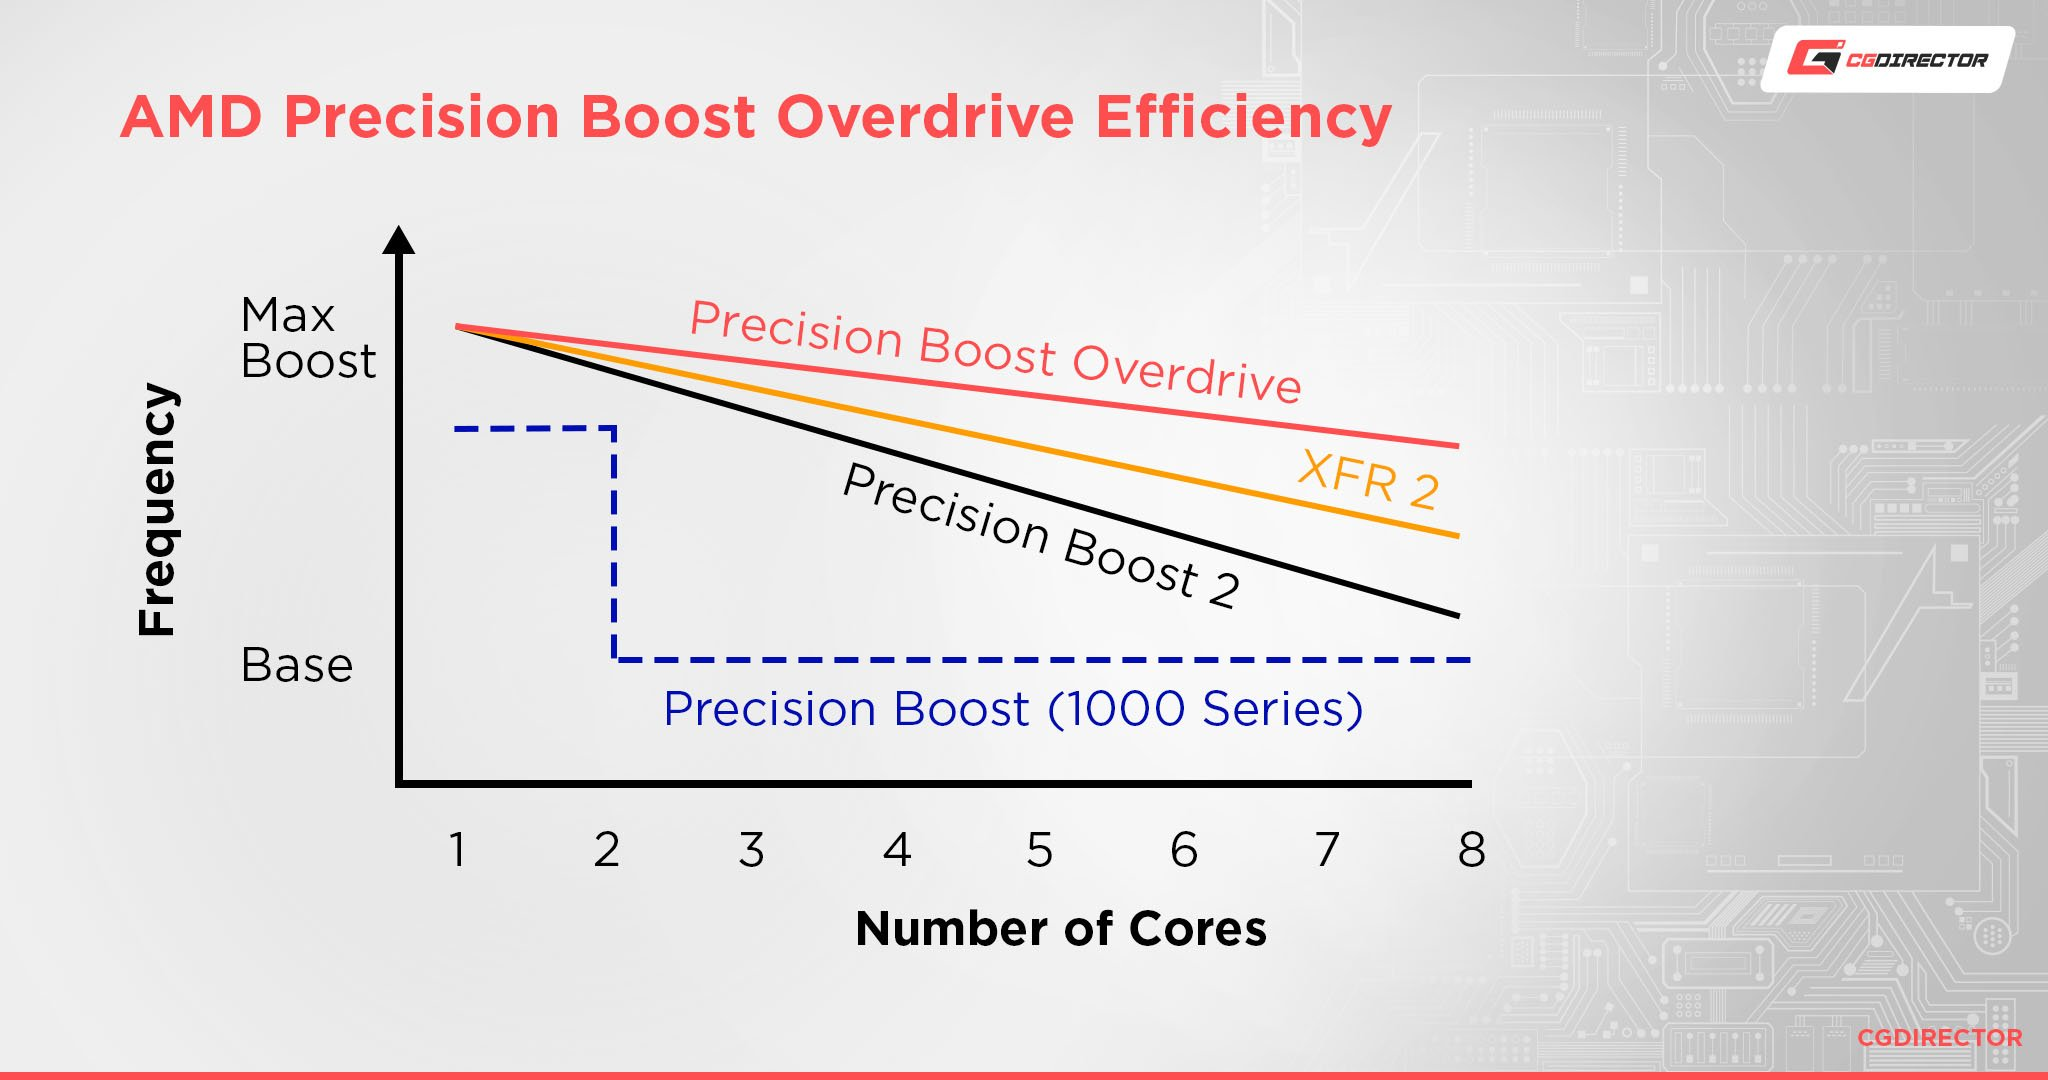 Precision boost overdrive efficiency